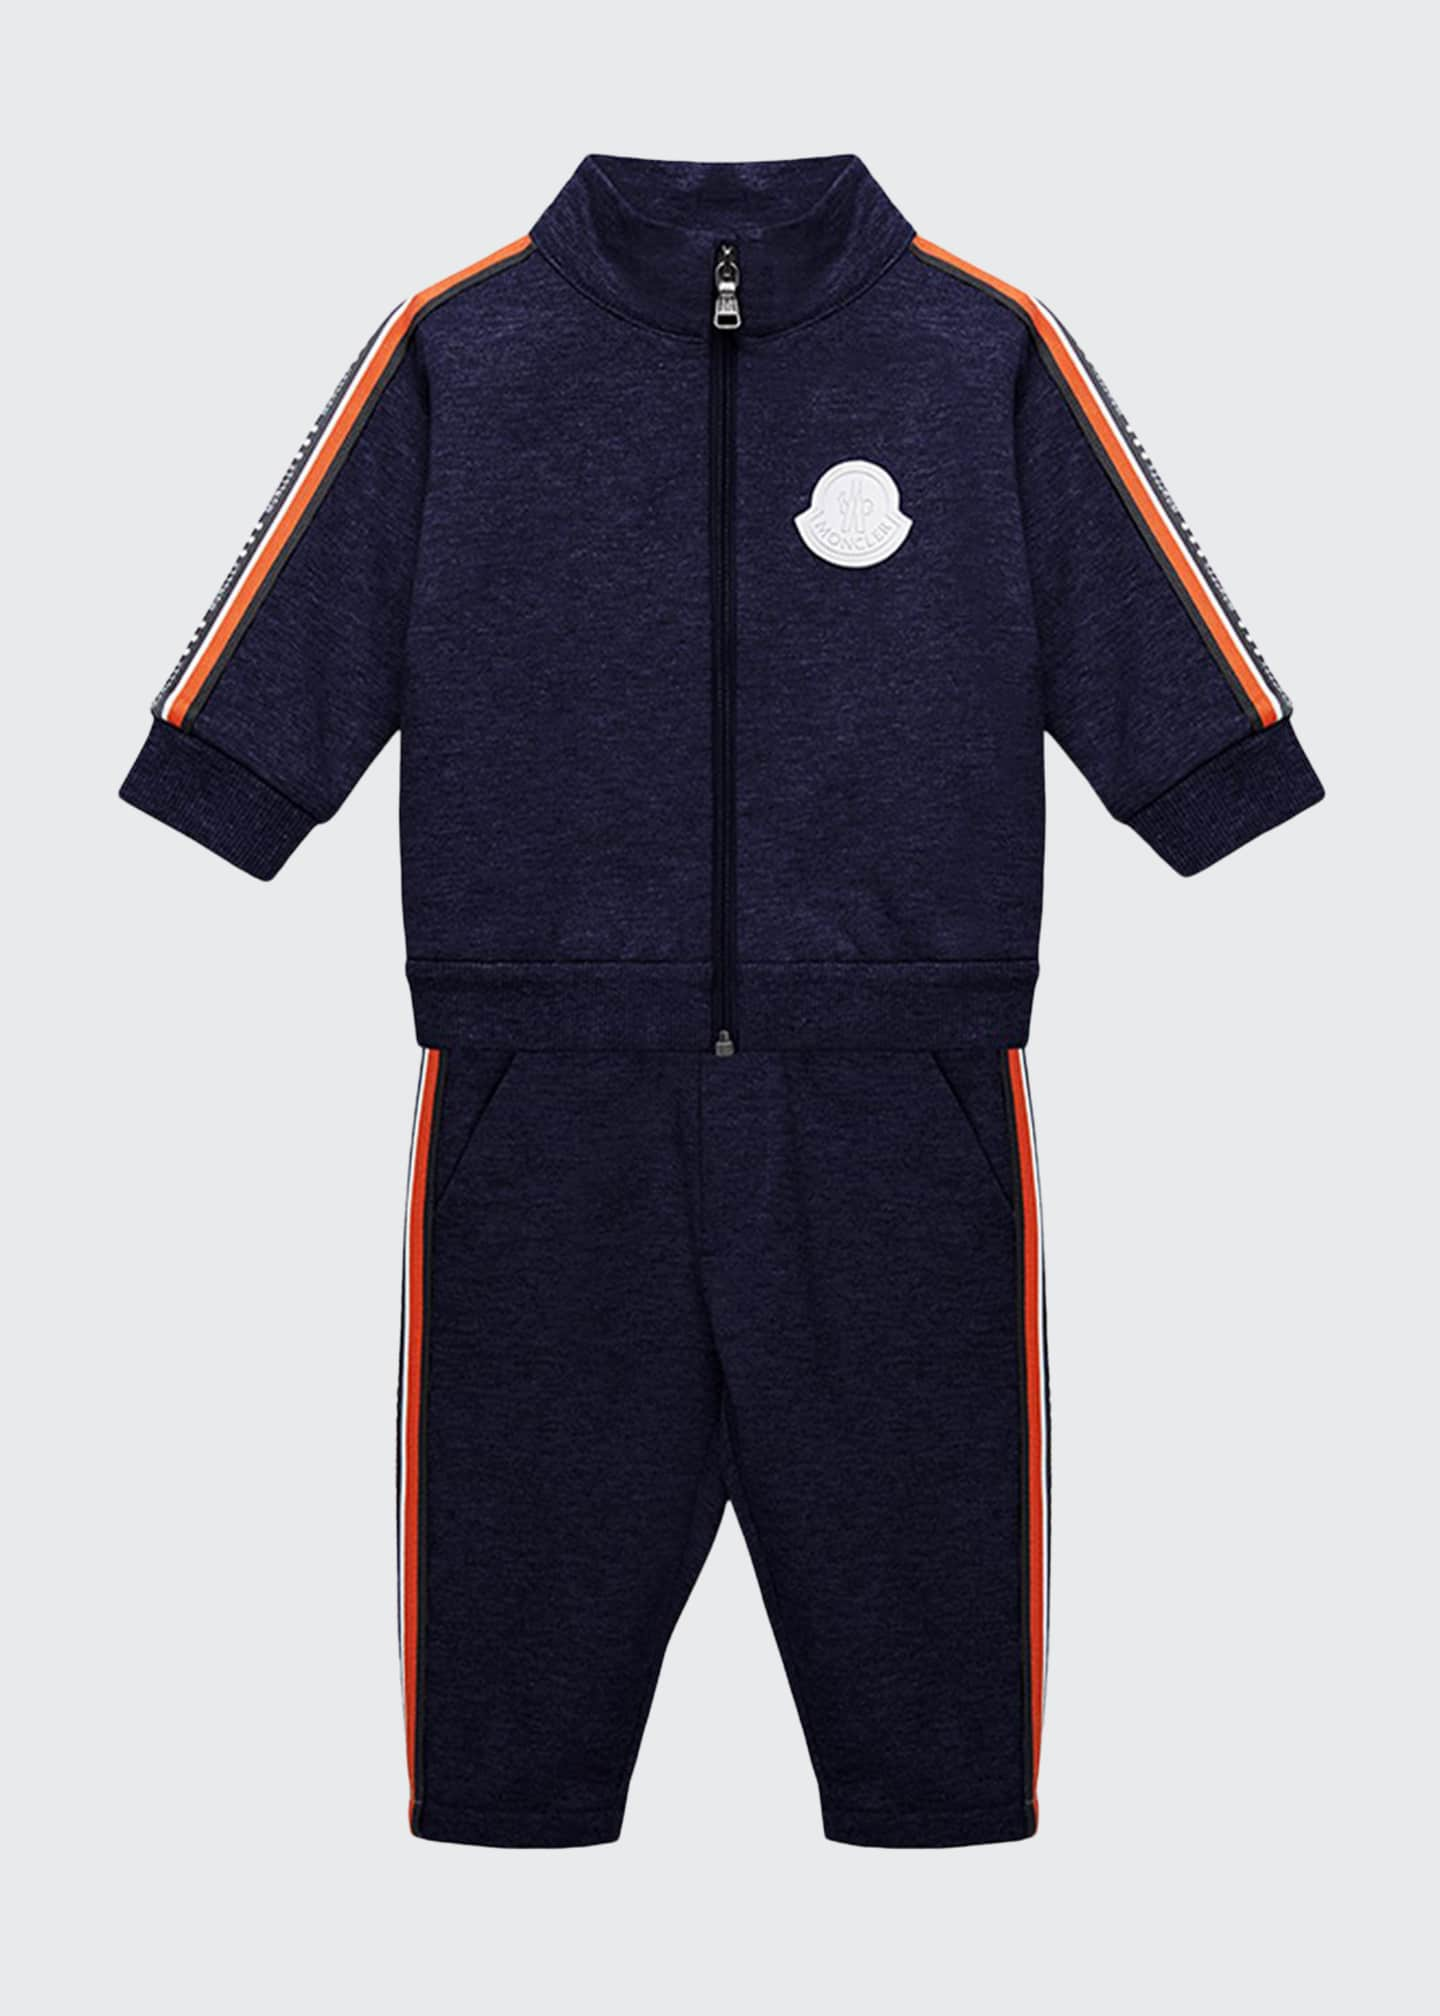 Moncler Side-Stripe Jacket w/ Matching Sweatpants, Size 12M-3